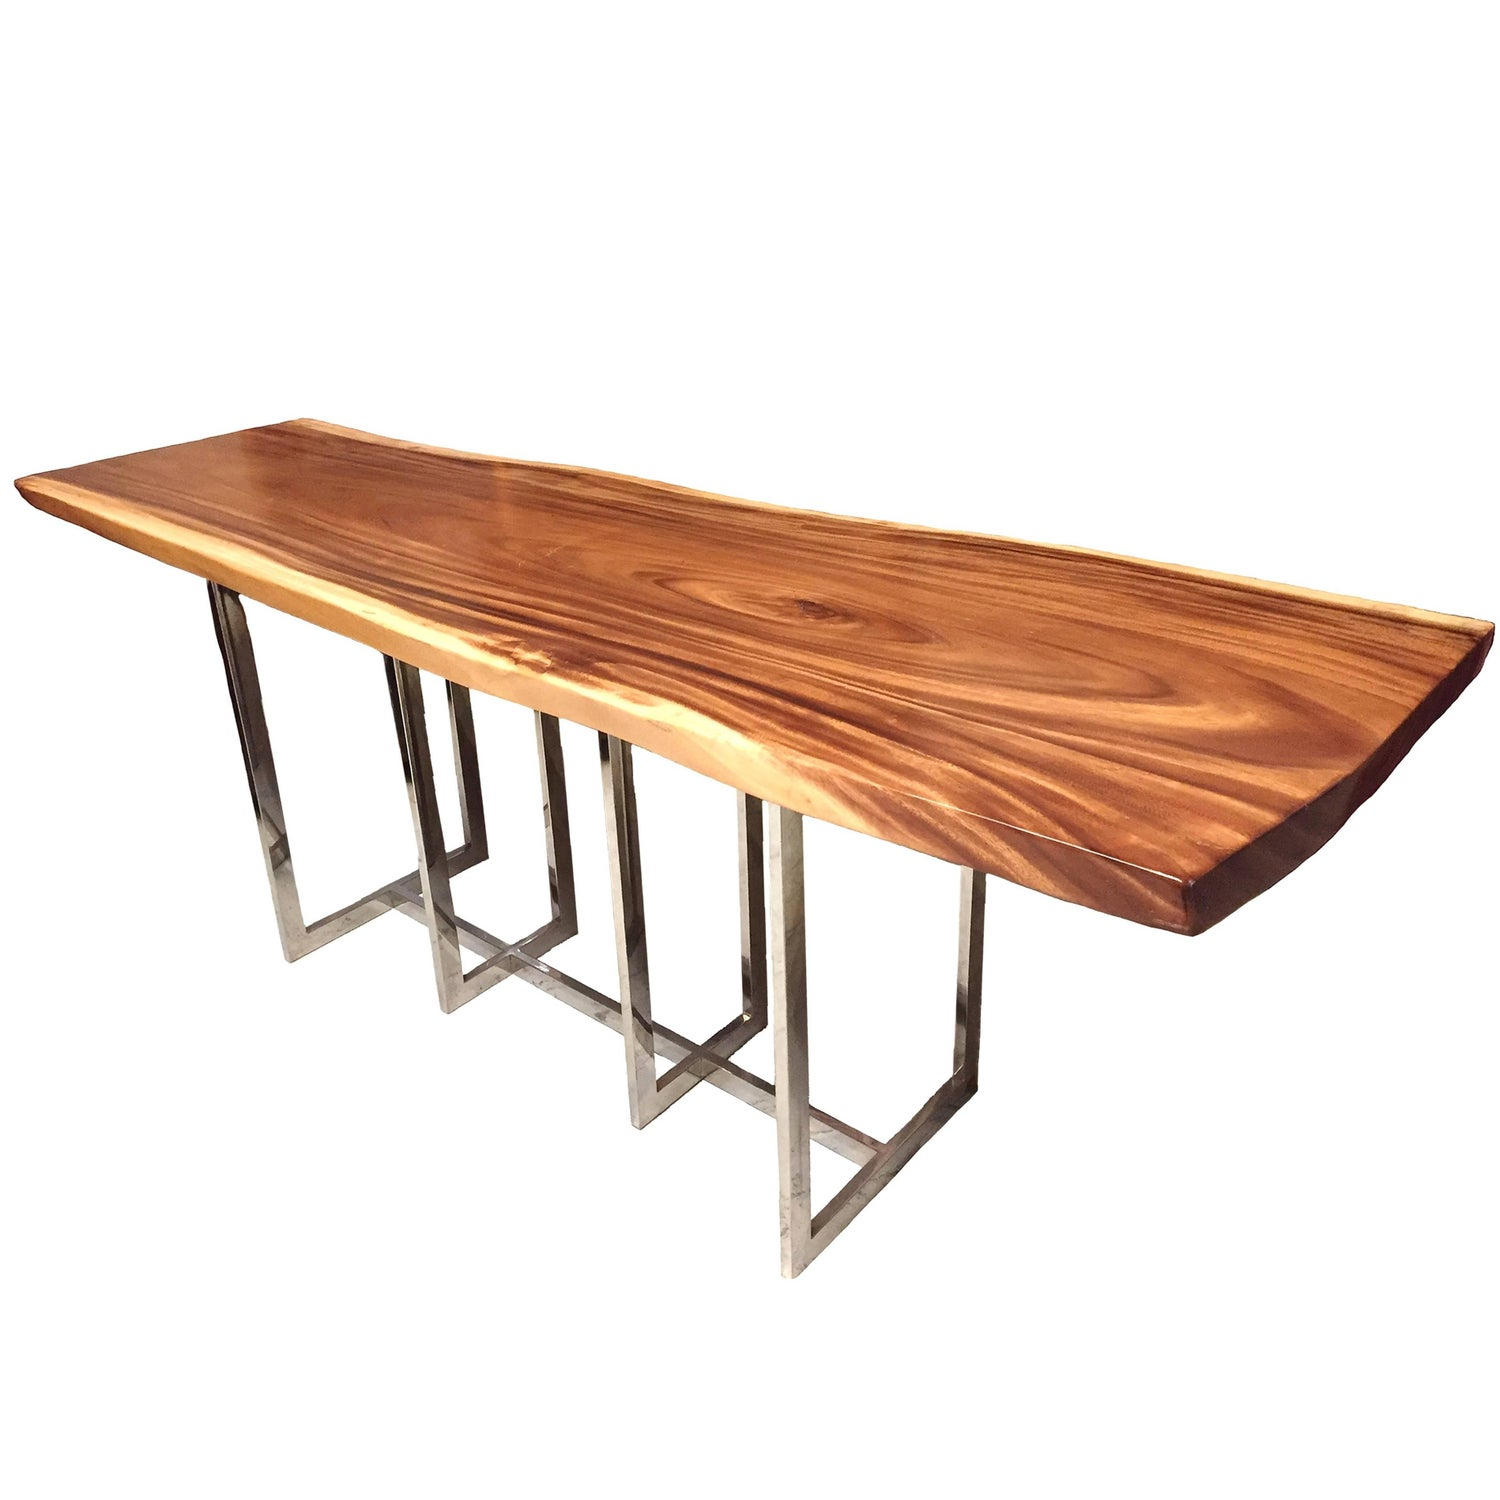 Live Edge Meh Wood Table with Chrome Base For Sale at 1stdibs